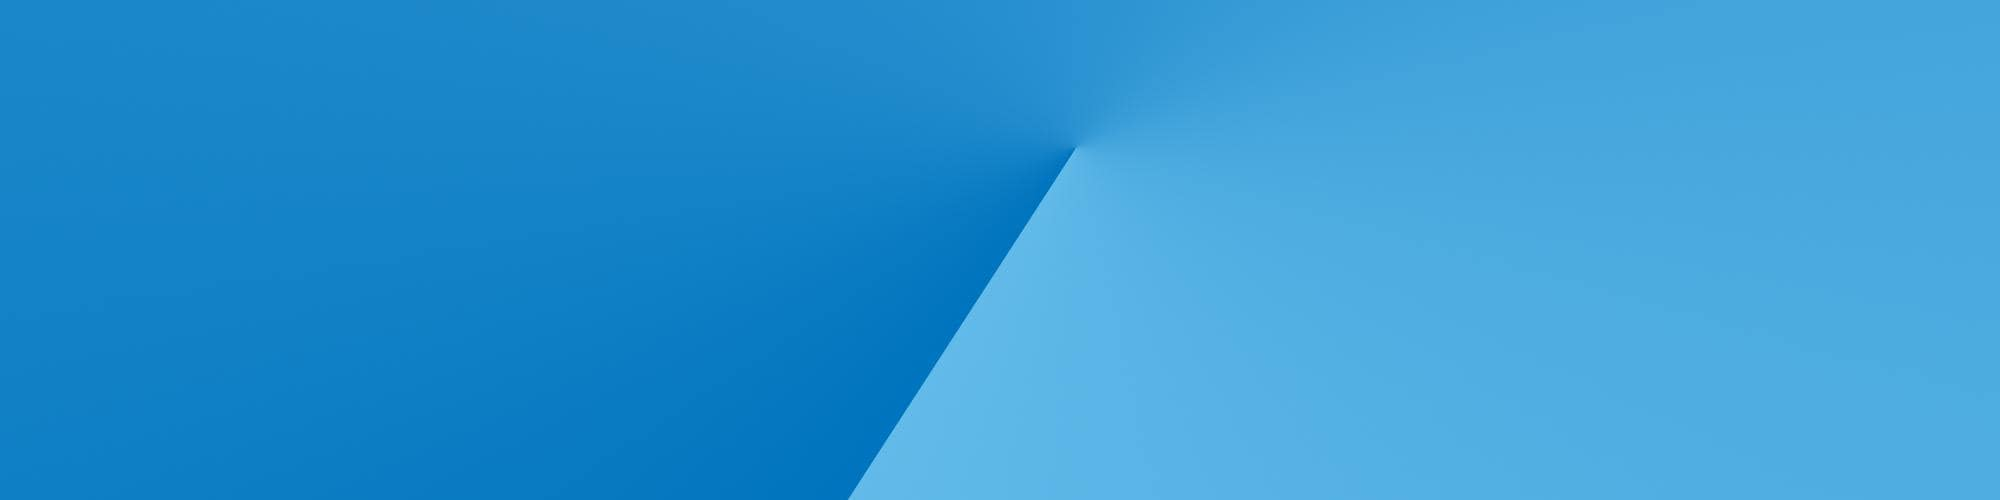 Abstract Blue Angular gradient hero